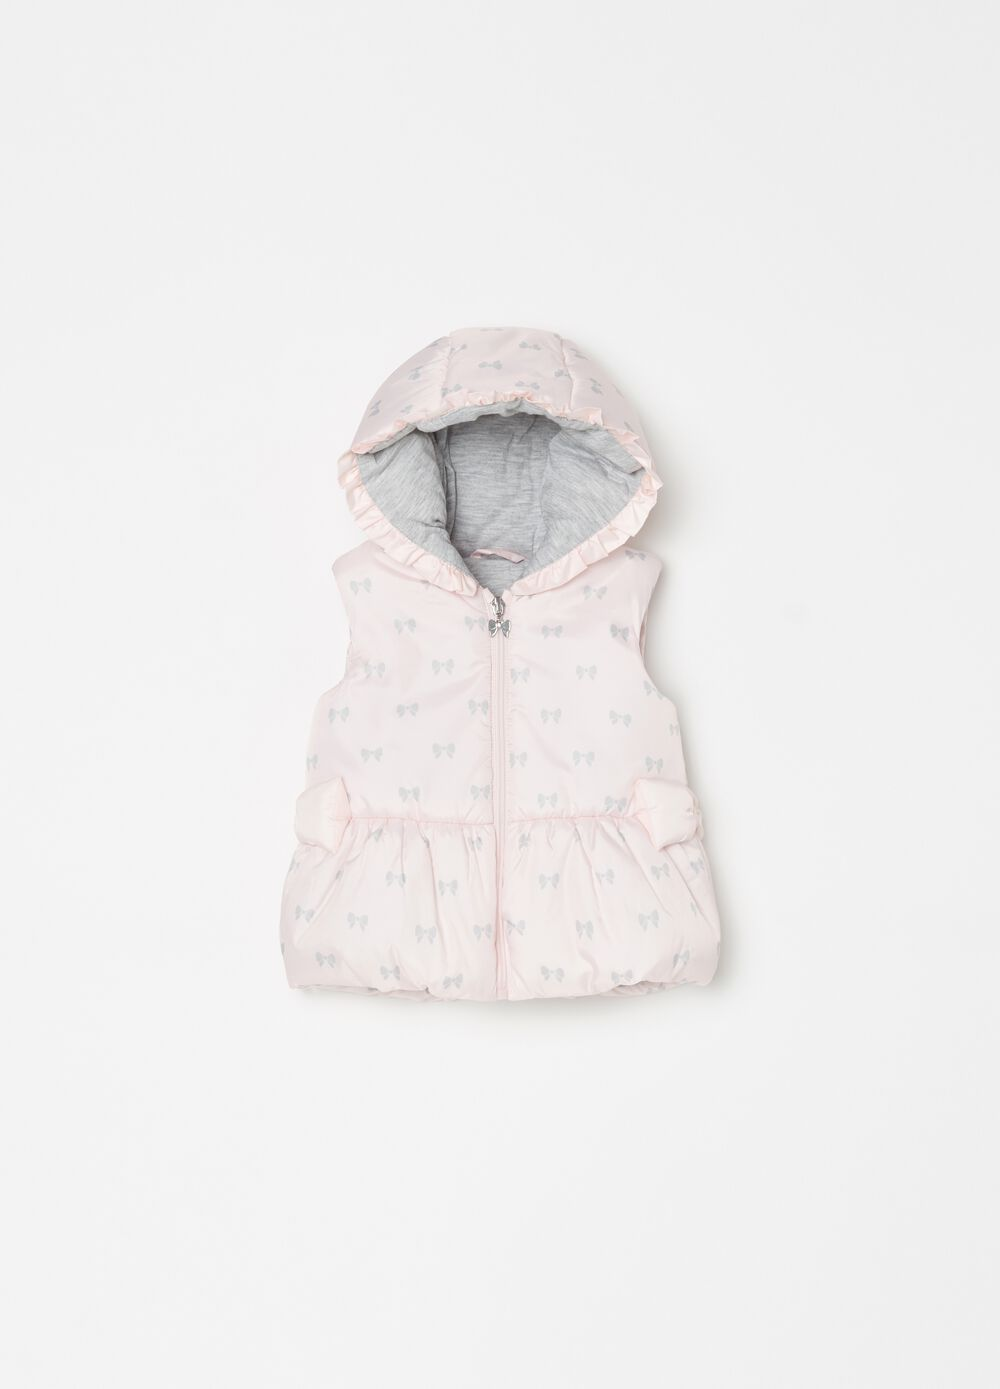 Padded gilet with bow pattern